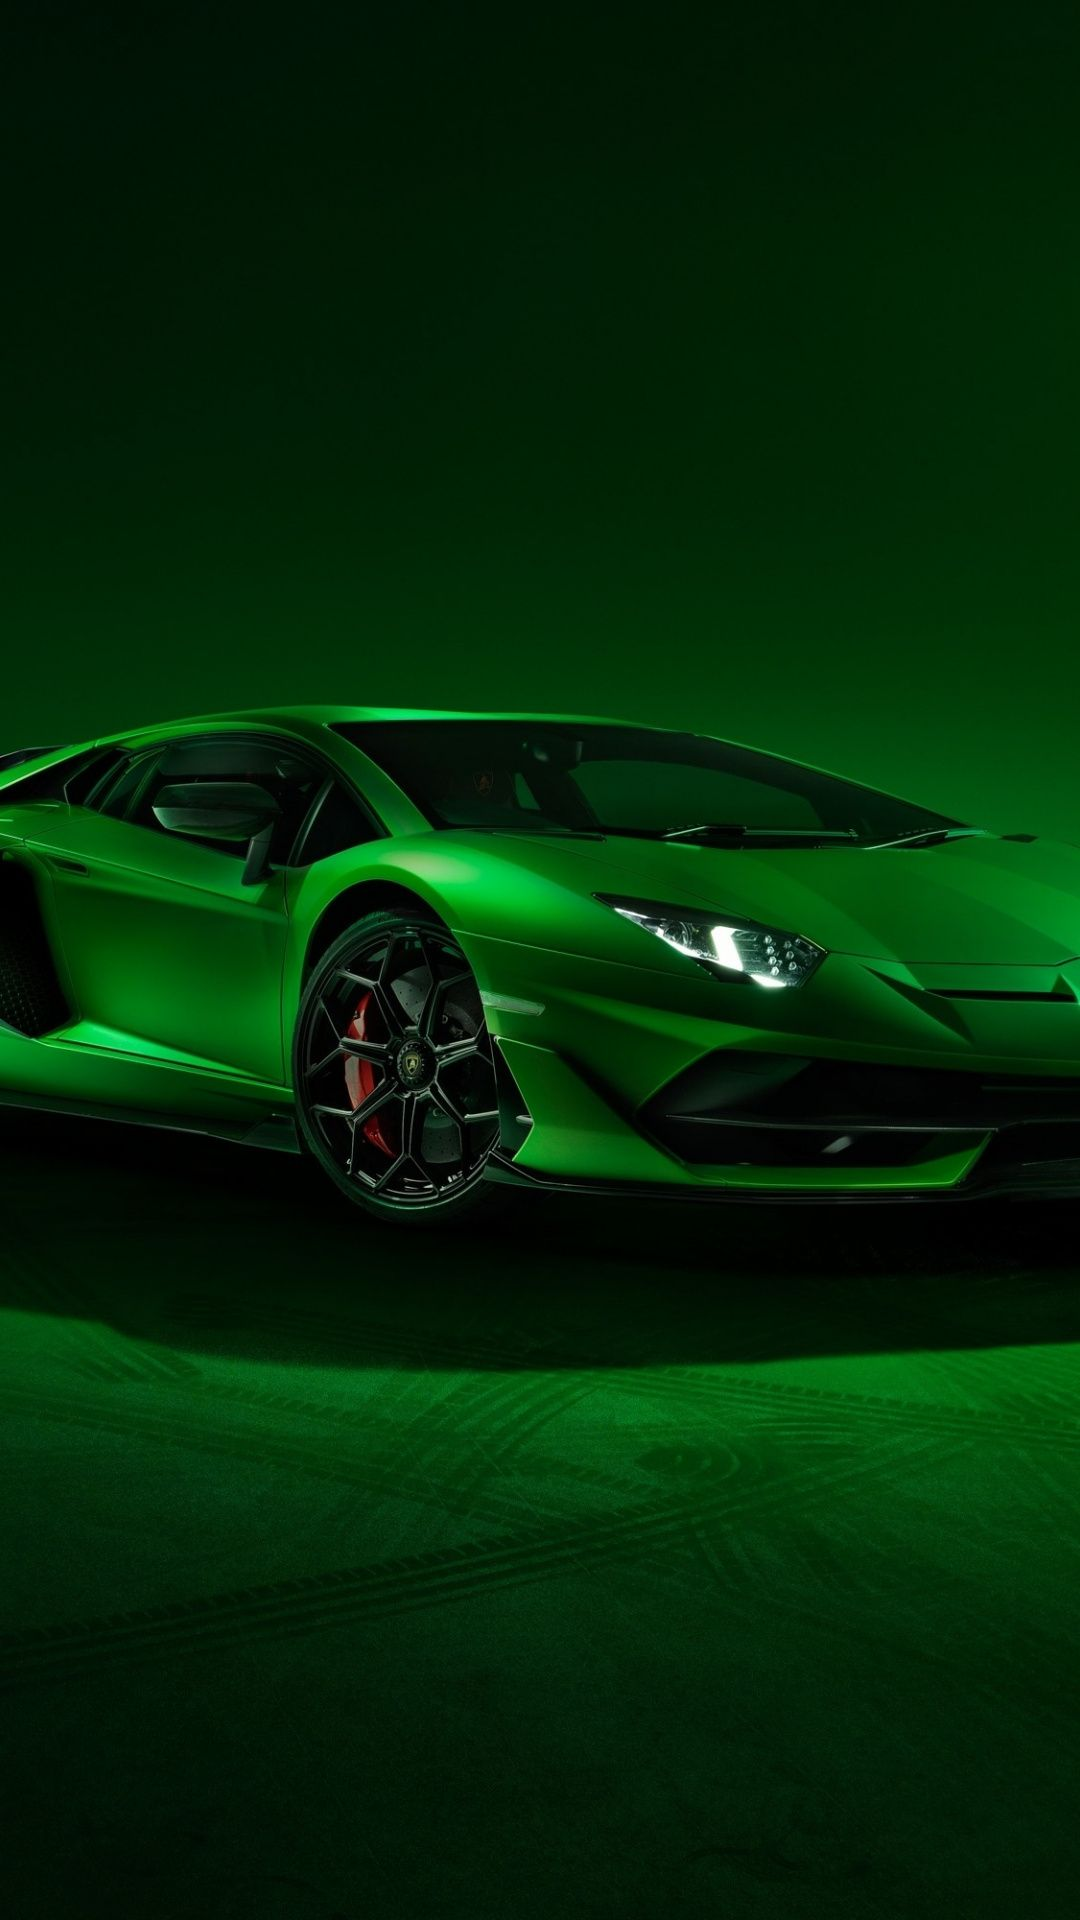 Green Lamborghini iPhone Wallpapers , Top Free Green